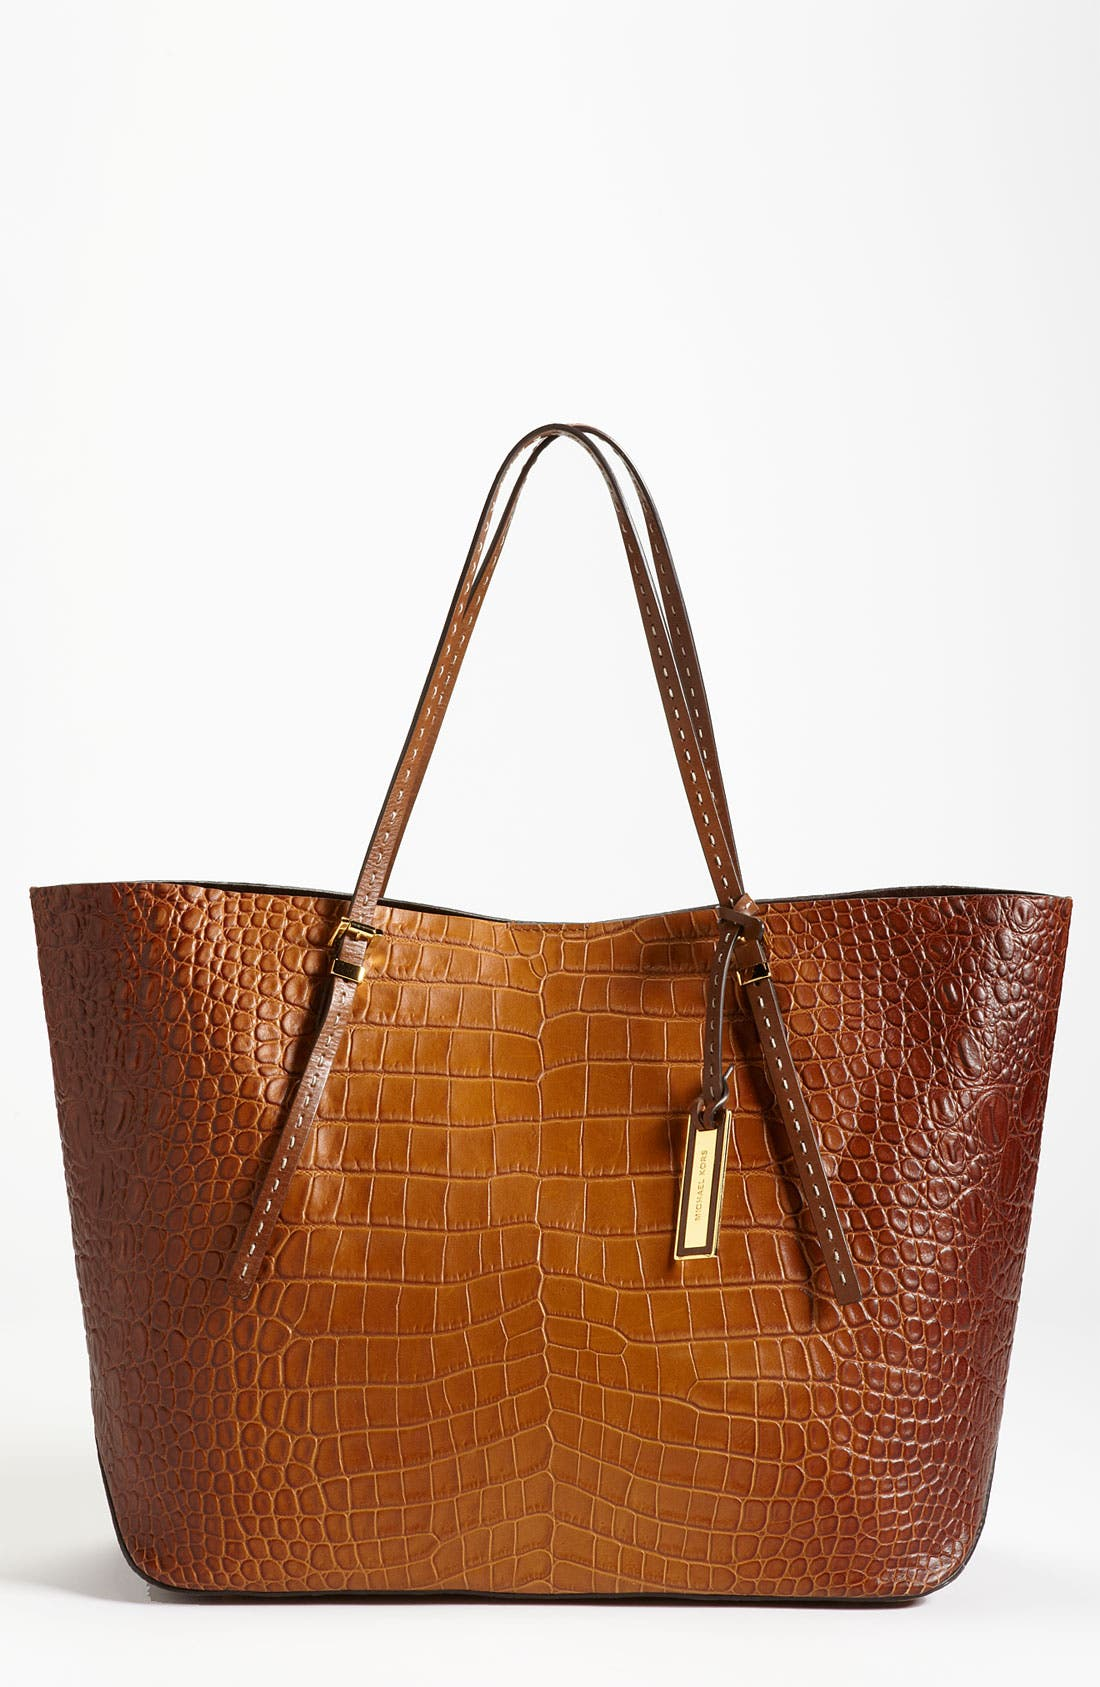 Alternate Image 1 Selected - Michael Kors Croc Embossed Leather Tote